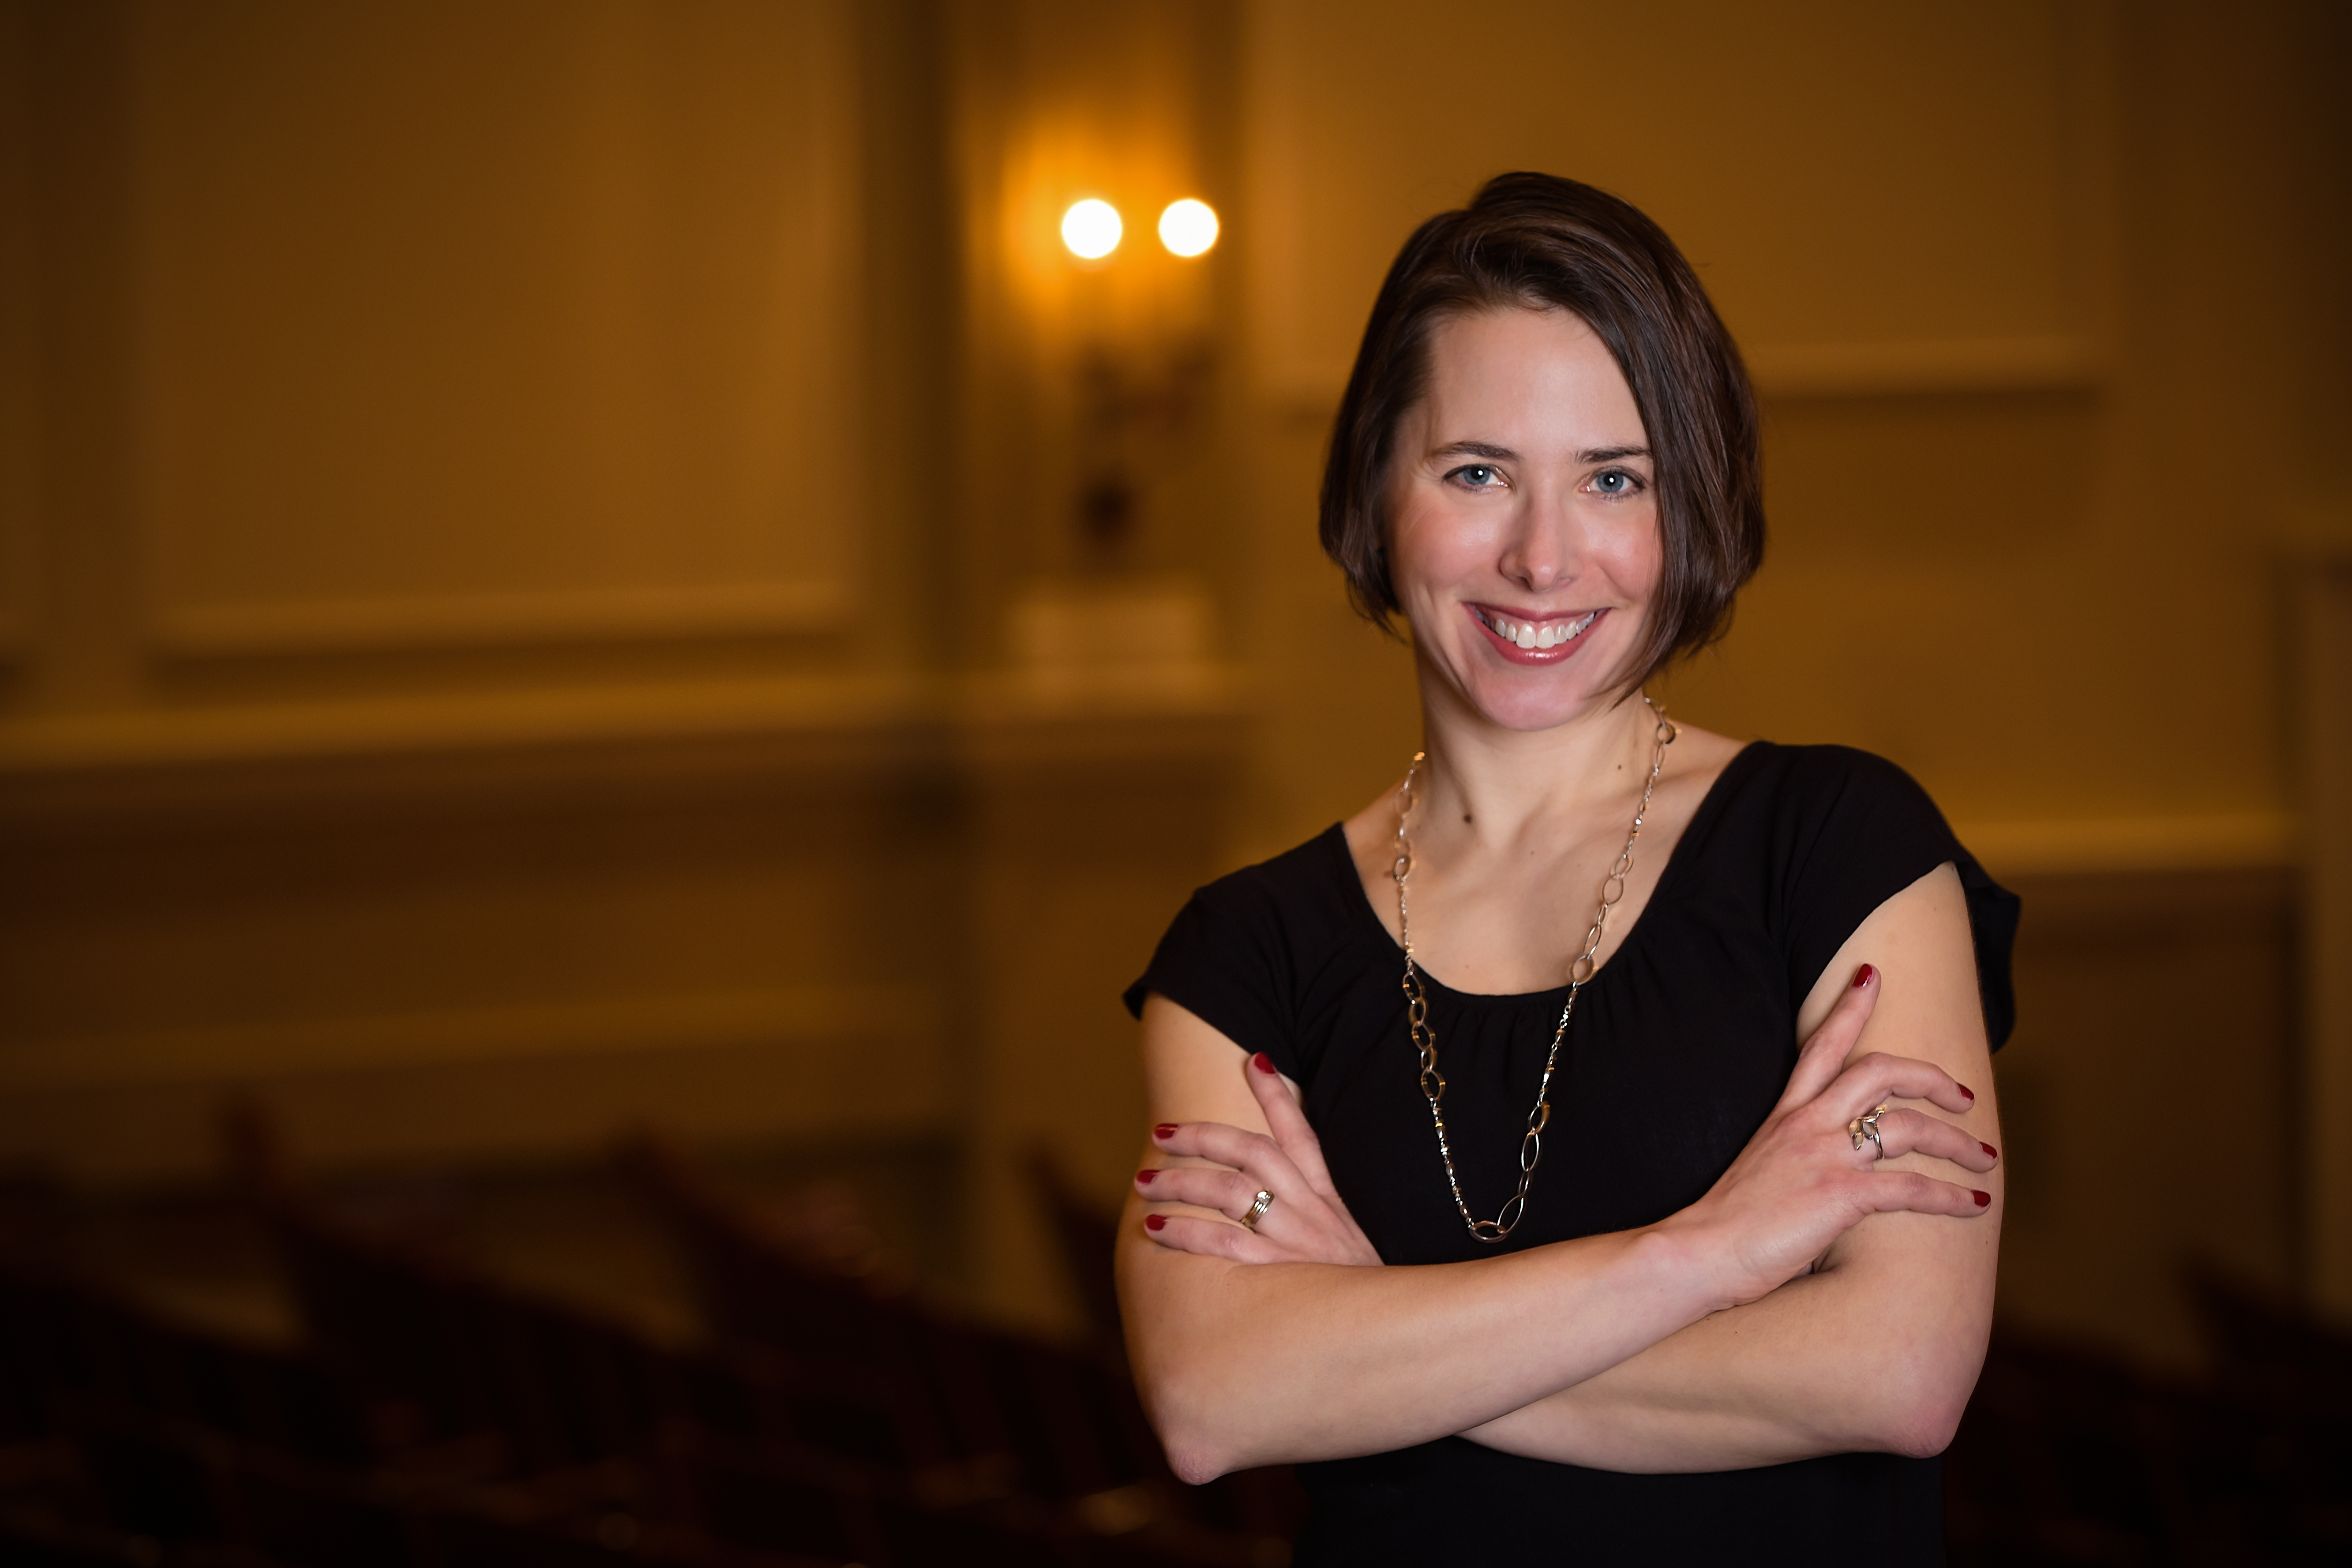 BWW Interview: Kristina Riggle, author of Broadway-themed novel VIVIAN IN RED